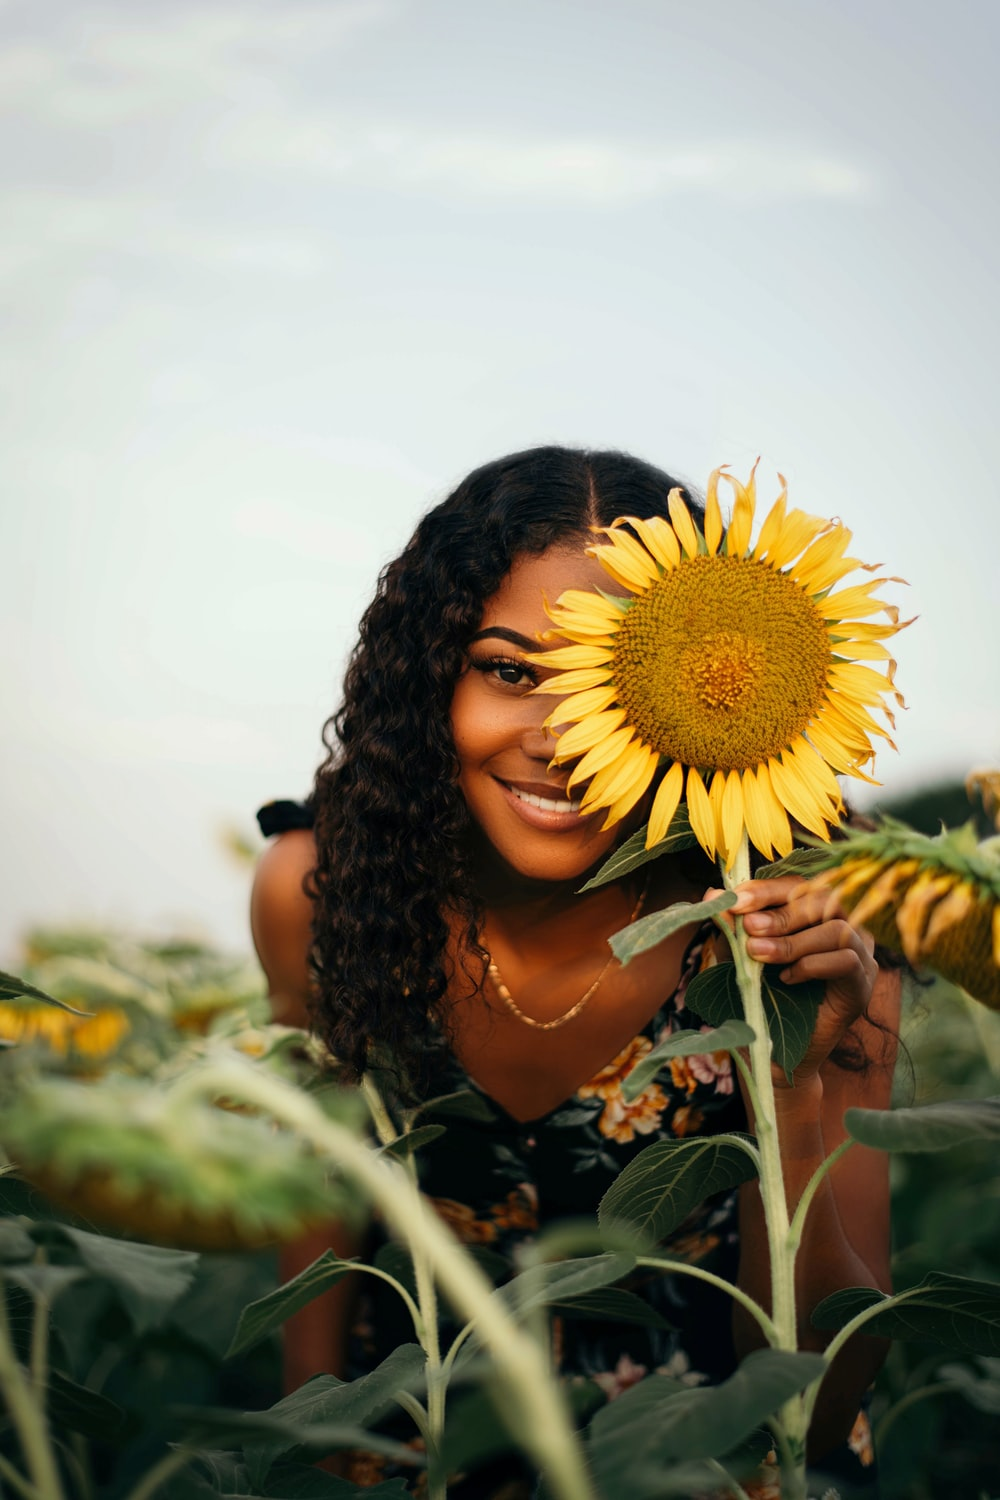 woman in black and green floral dress holding sunflower